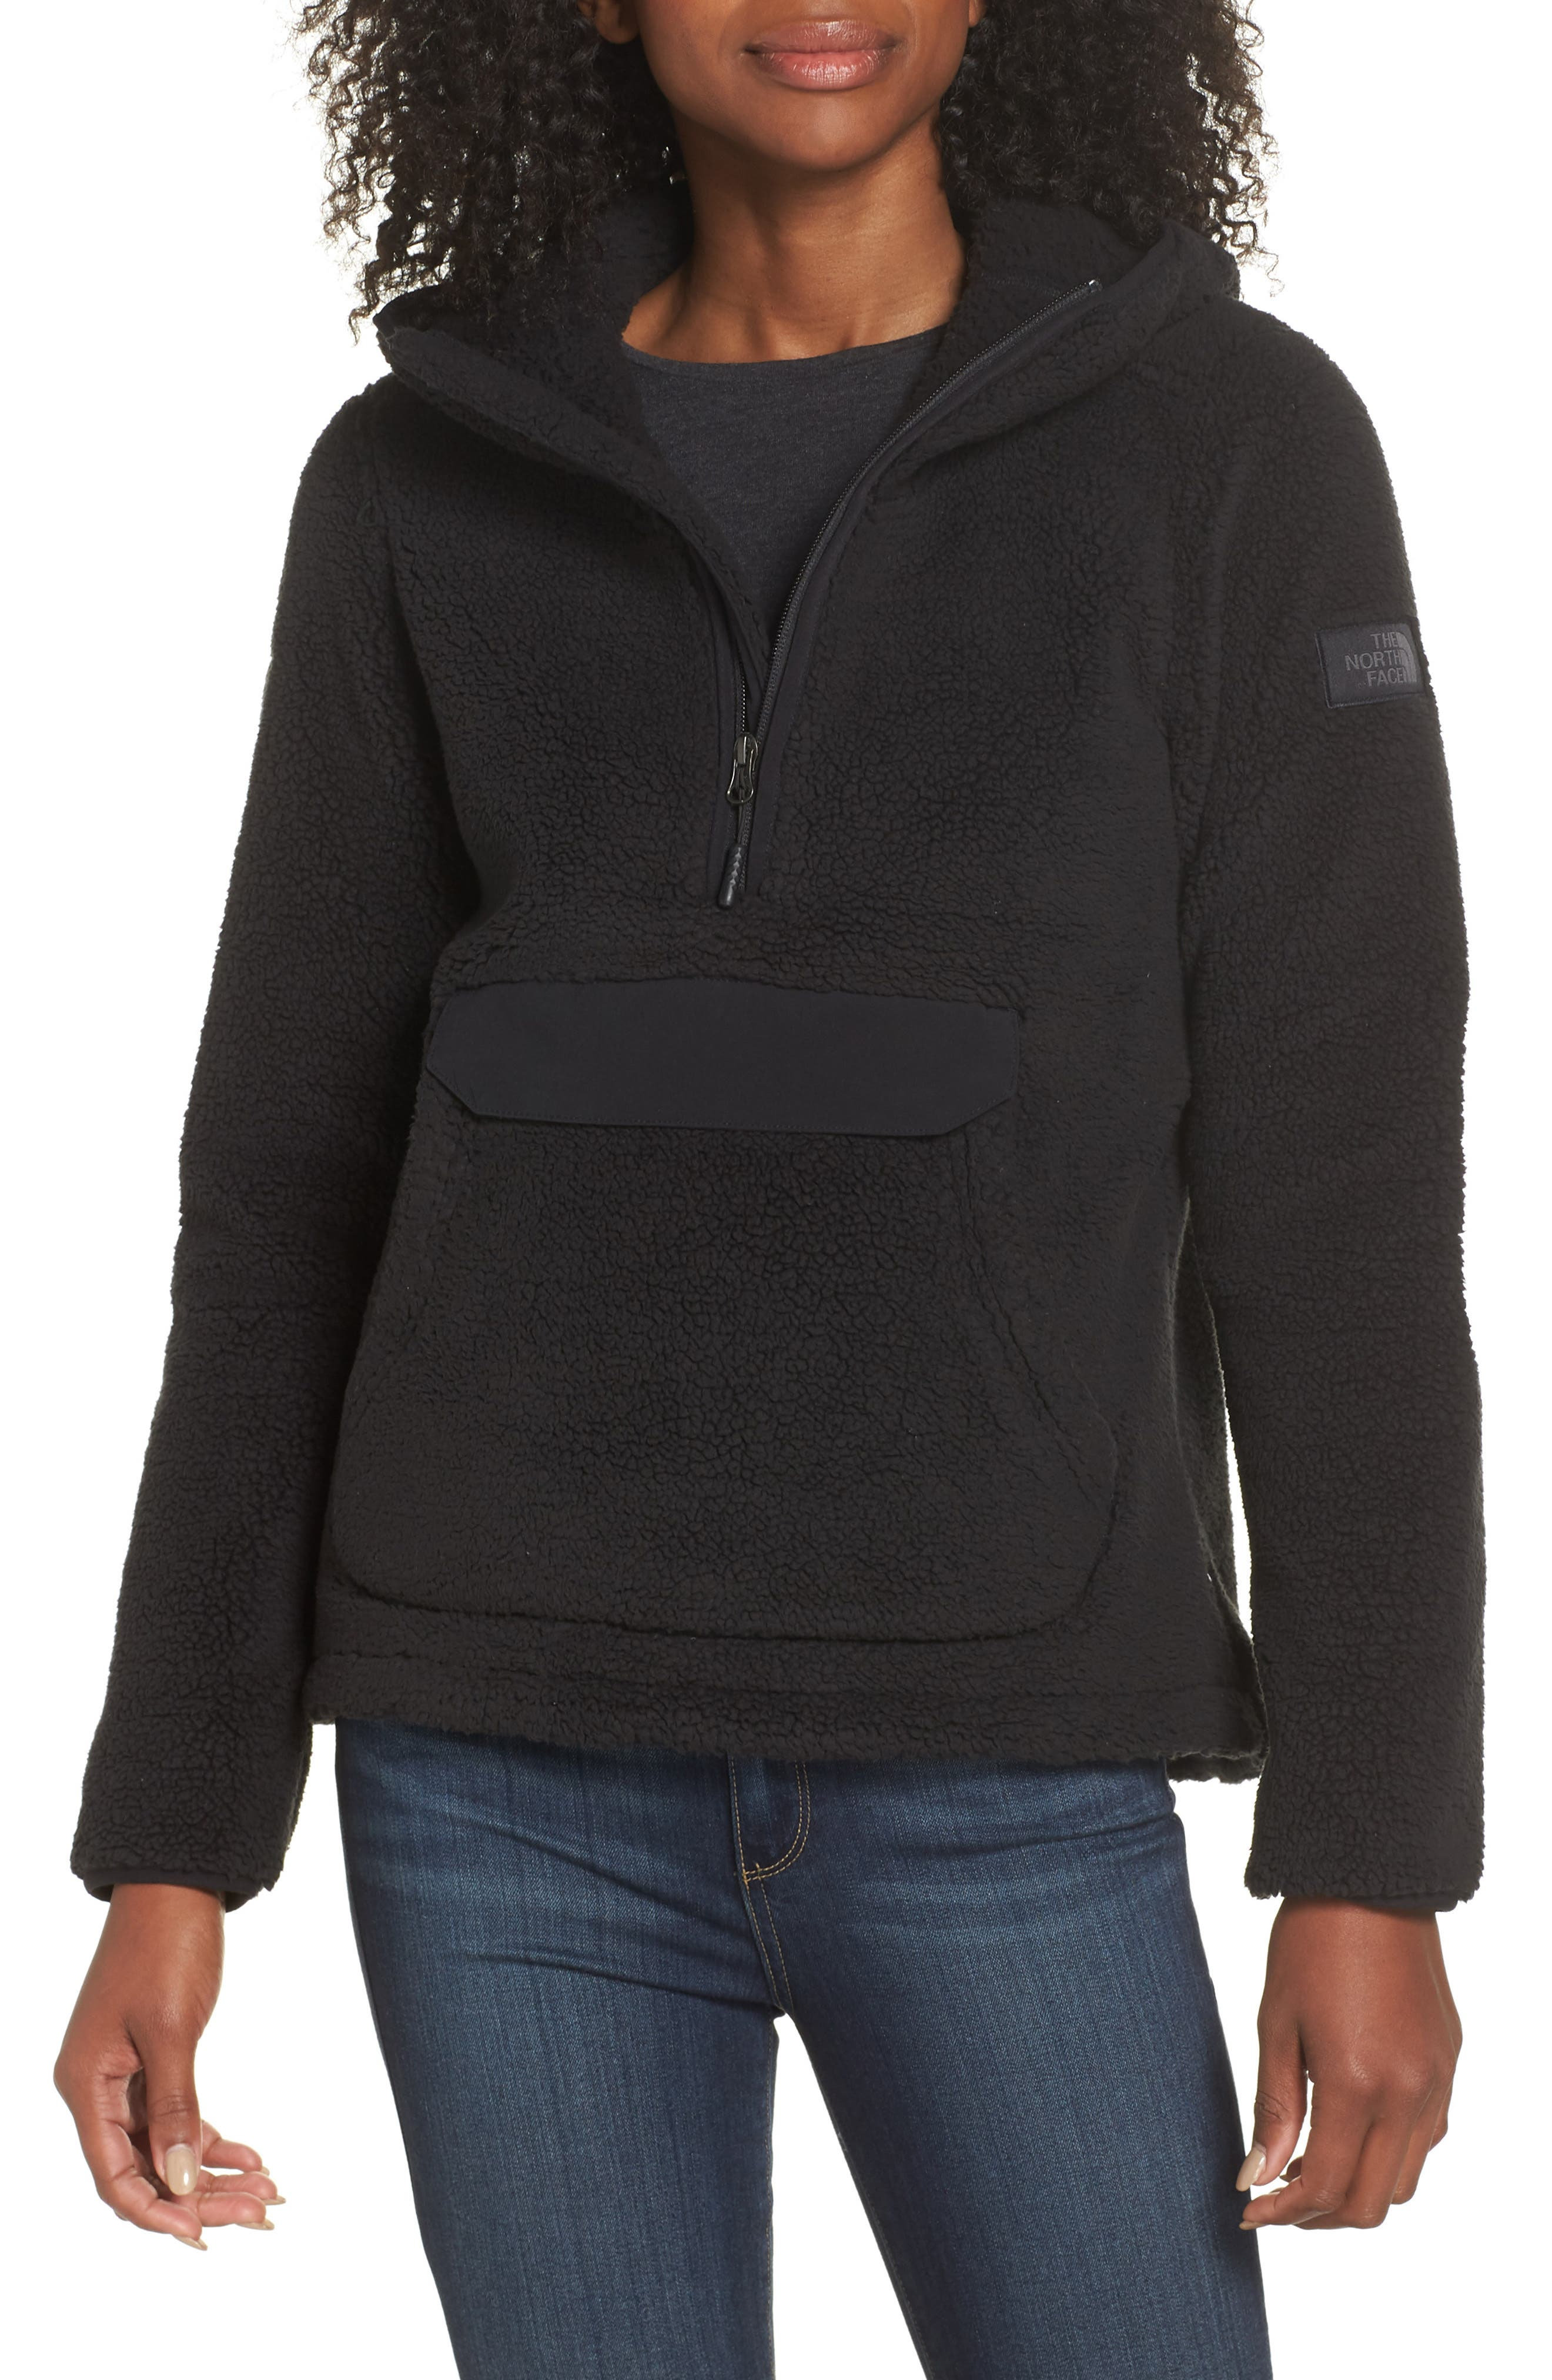 THE NORTH FACE, Campshire High Pile Fleece Pullover Hoodie, Main thumbnail 1, color, TNF BLACK